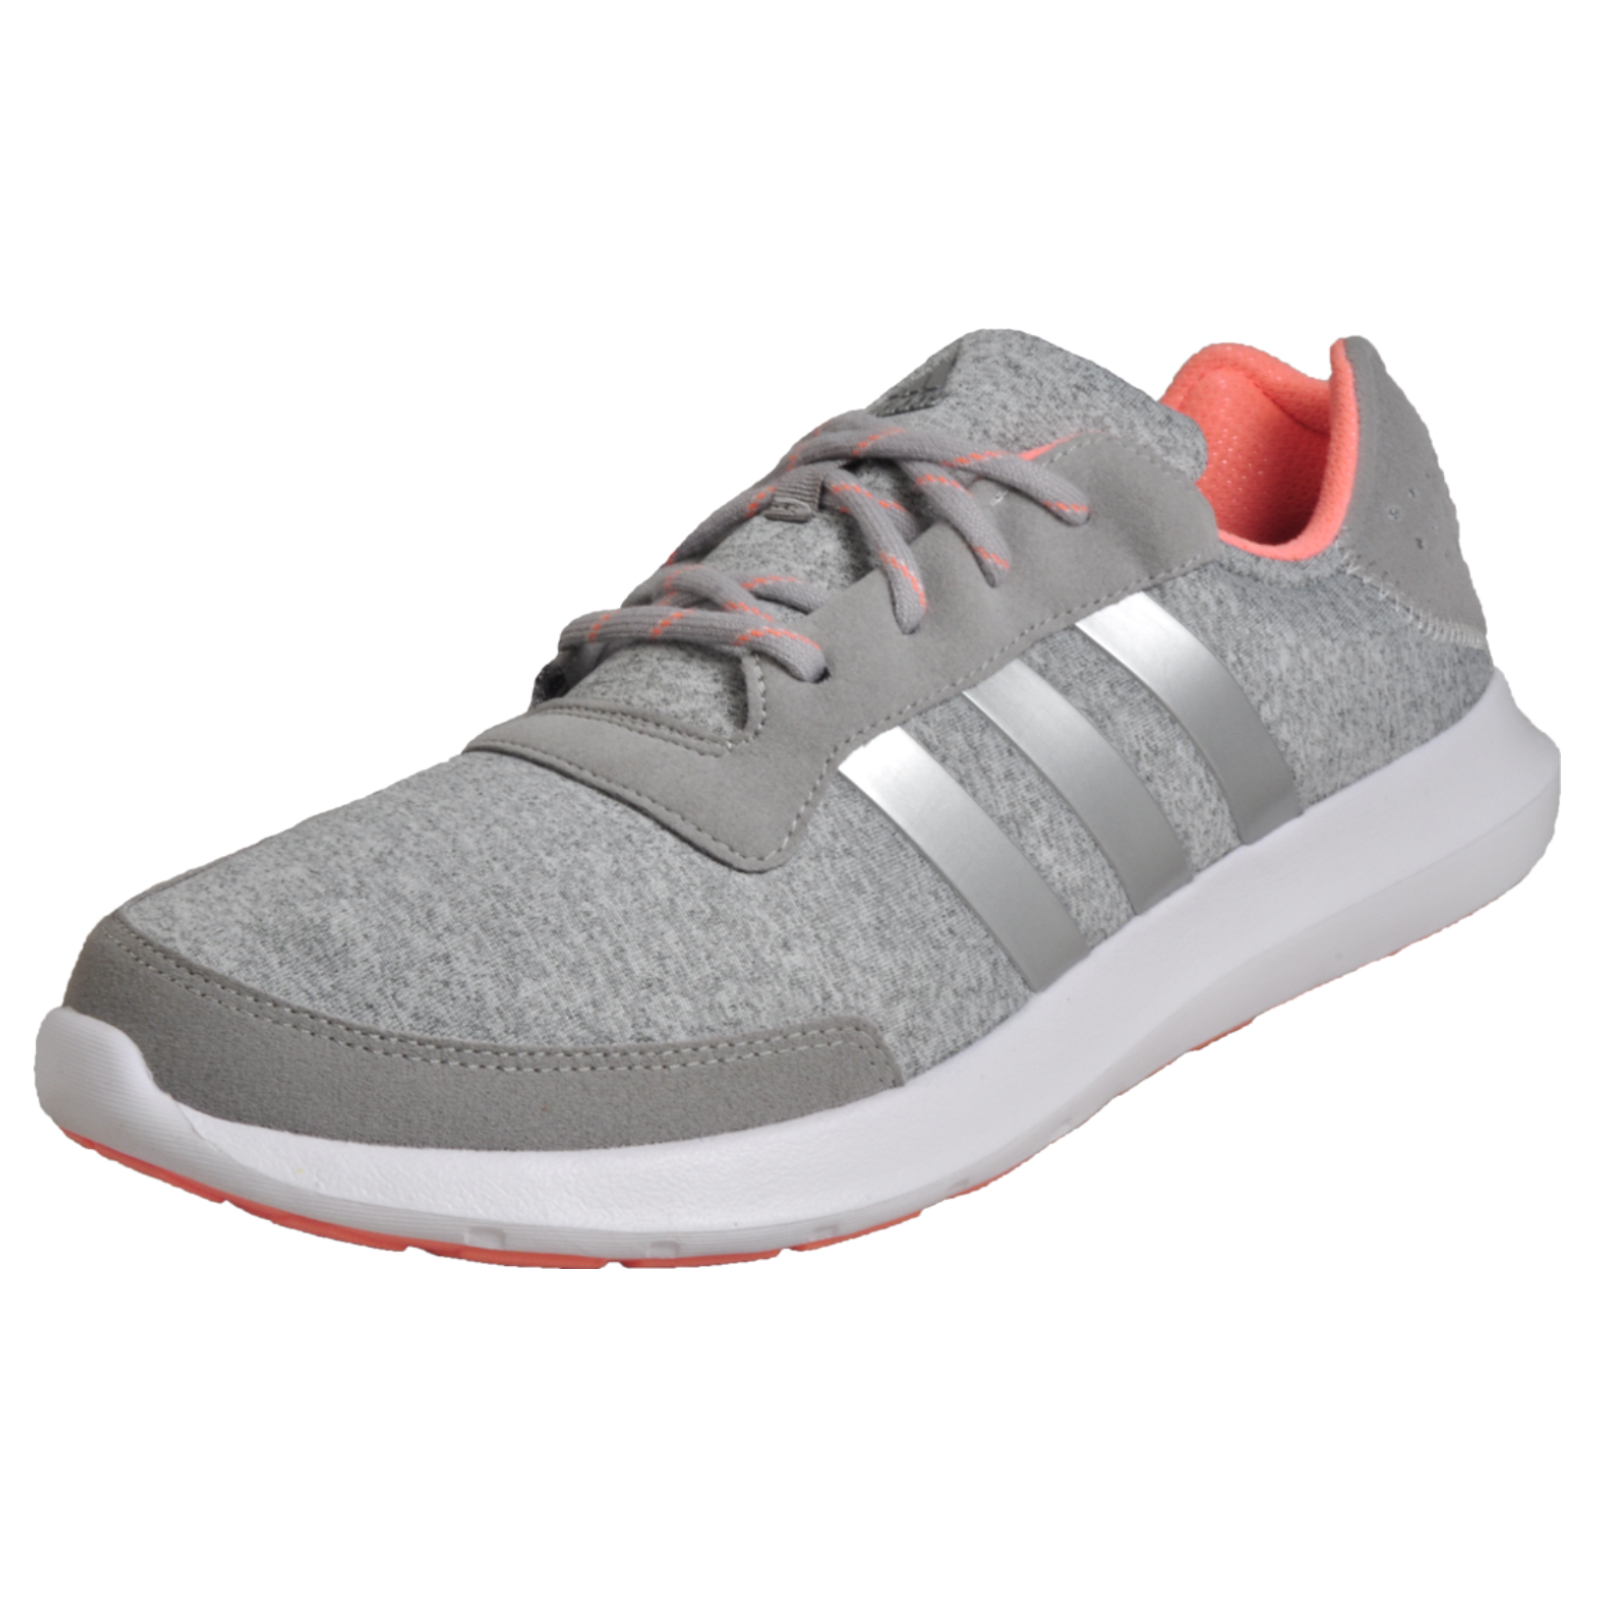 e3d3e1d400ae01 Adidas Element Refresh Supercloud Women s Running Shoes Big Sizes Grey UK  10 Only